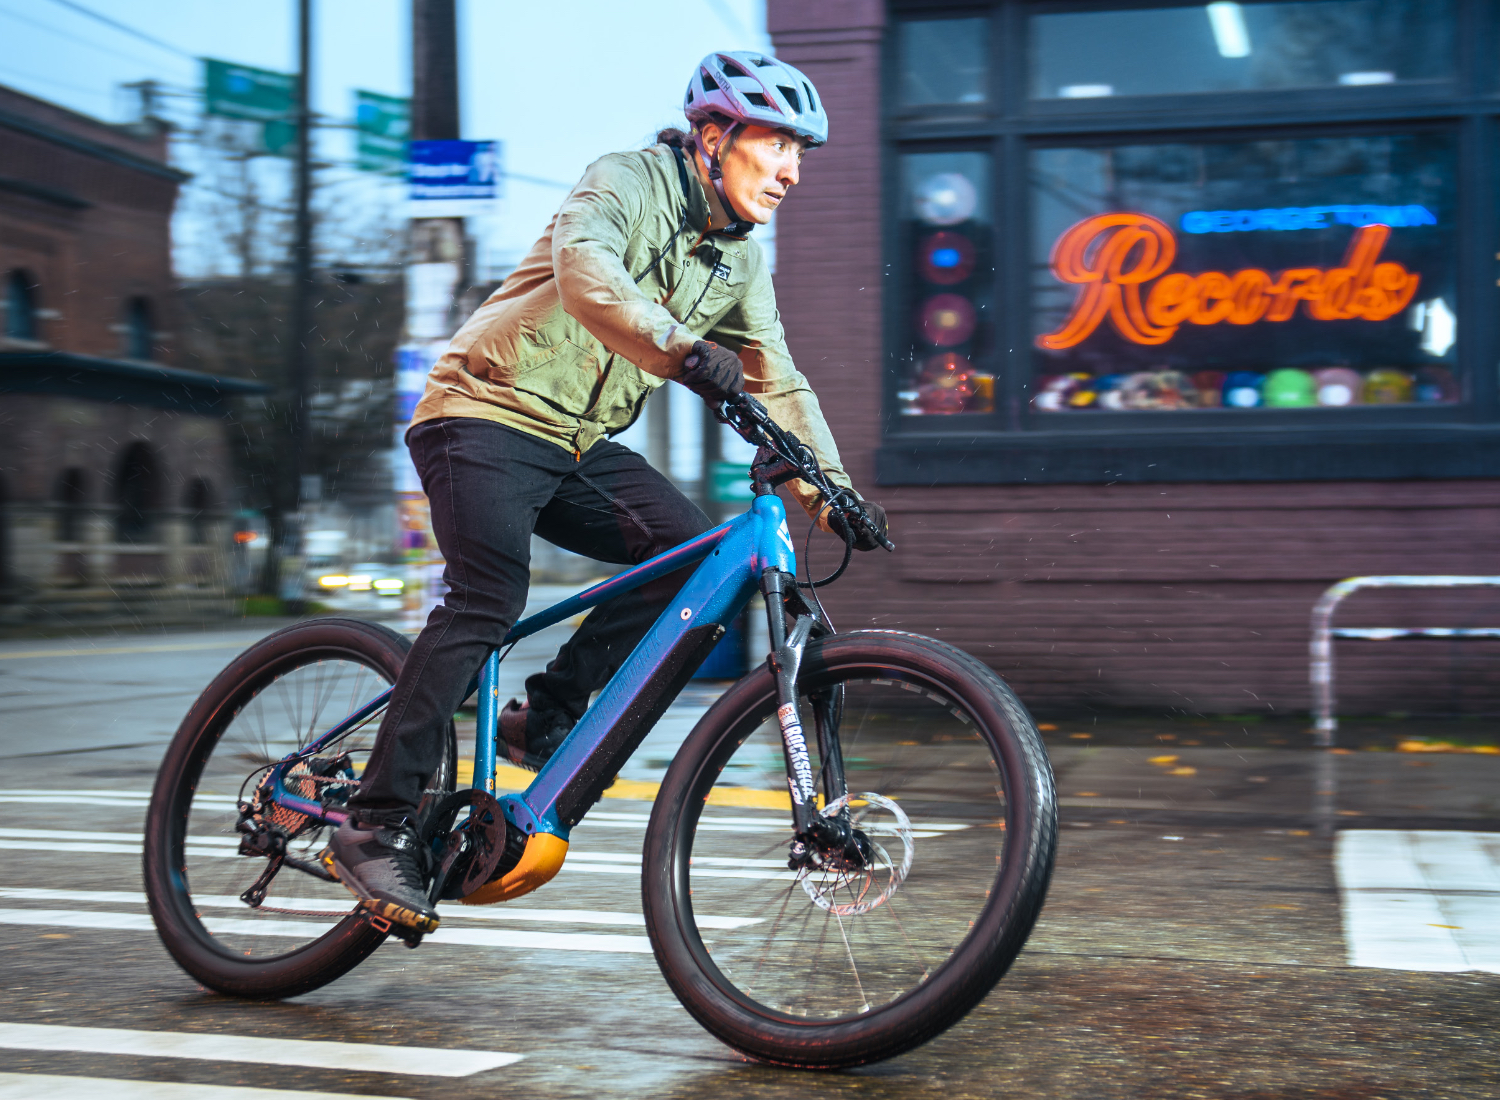 the-response-is-diamondback-bicycle's-answer-to-an-ever-shifting-cycle-industry